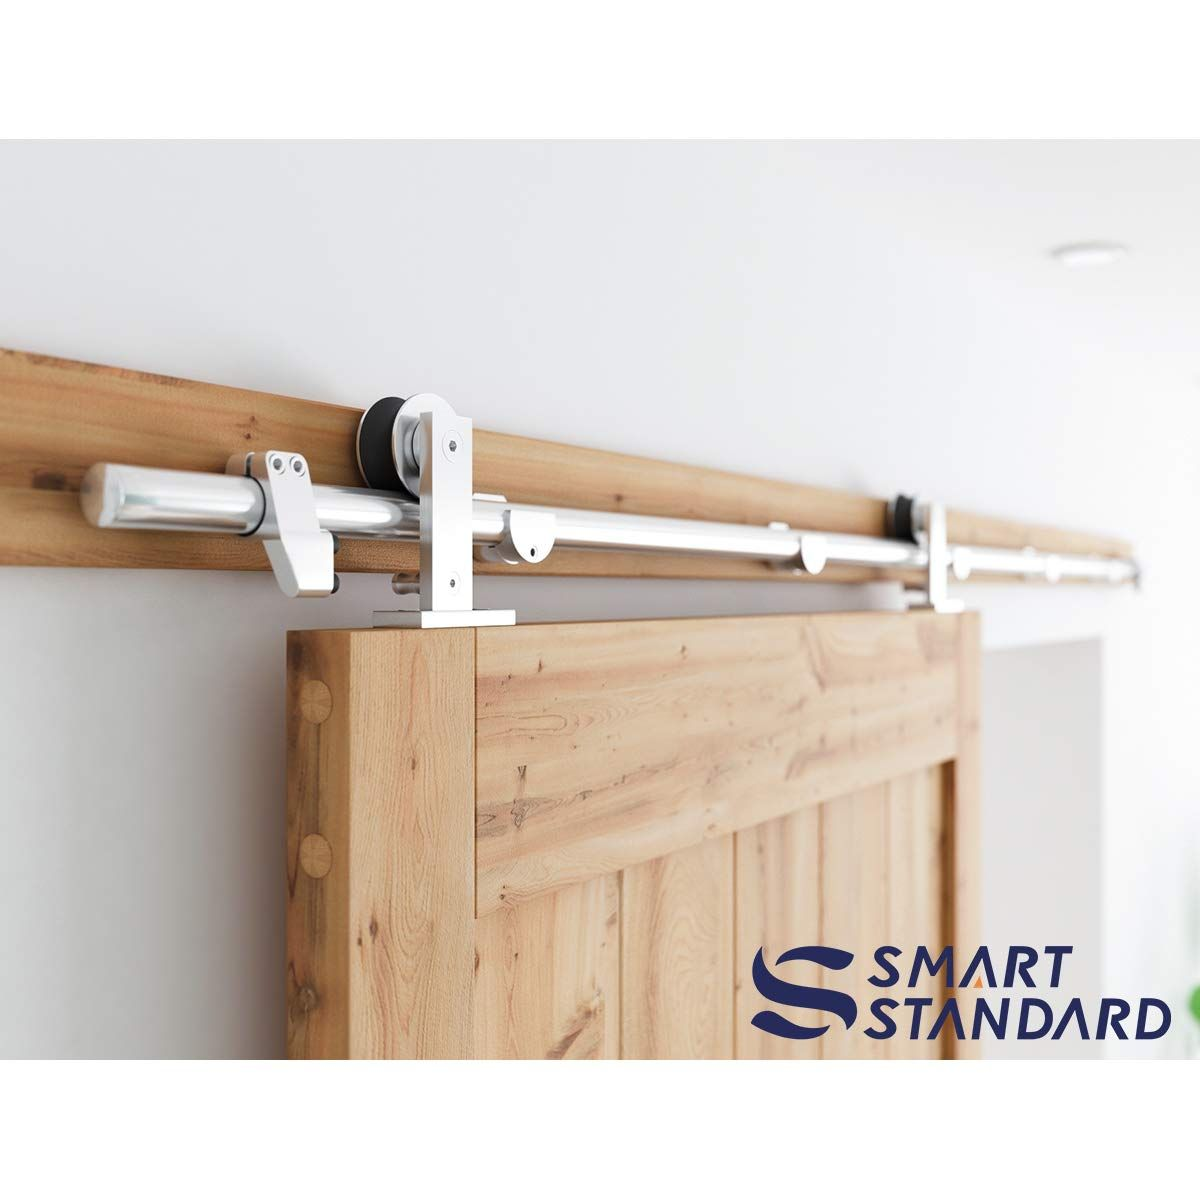 Single Sliding Barn Door Hardware Kit 6 To 12 Interior Sliding Barn Doors Barn Hardware Sliding Barn Door Hardware